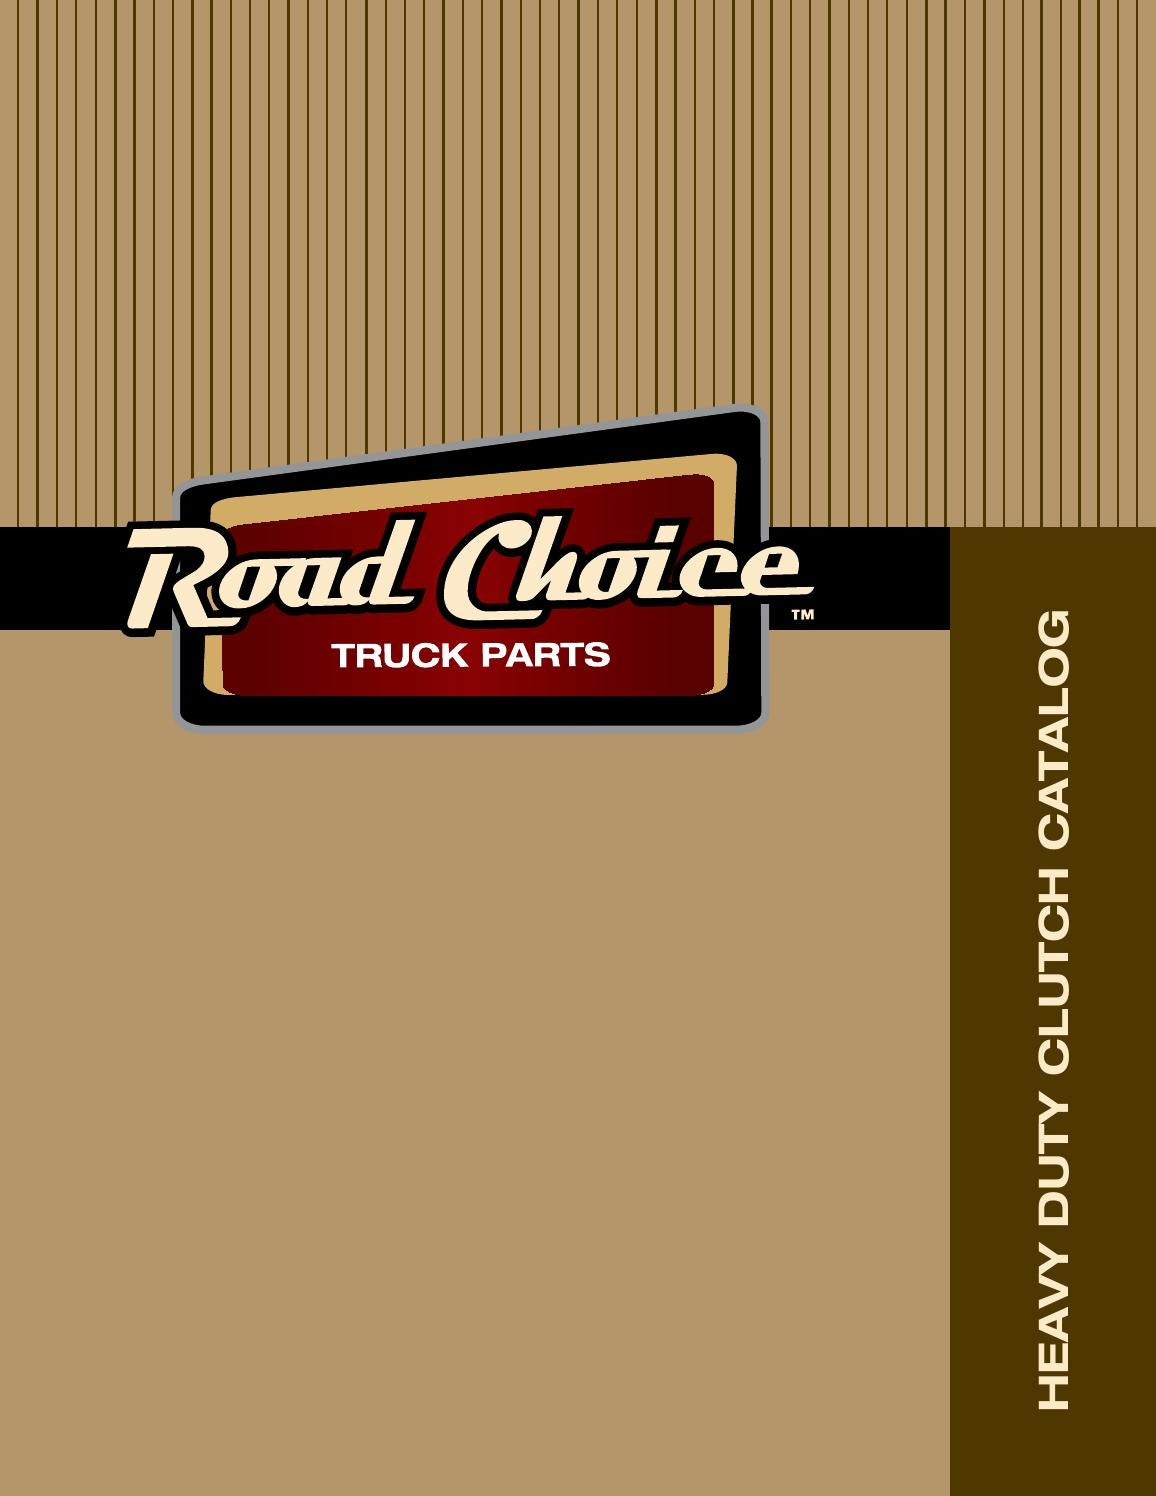 Clutch Catalog by Road Choice Truck Parts - issuu